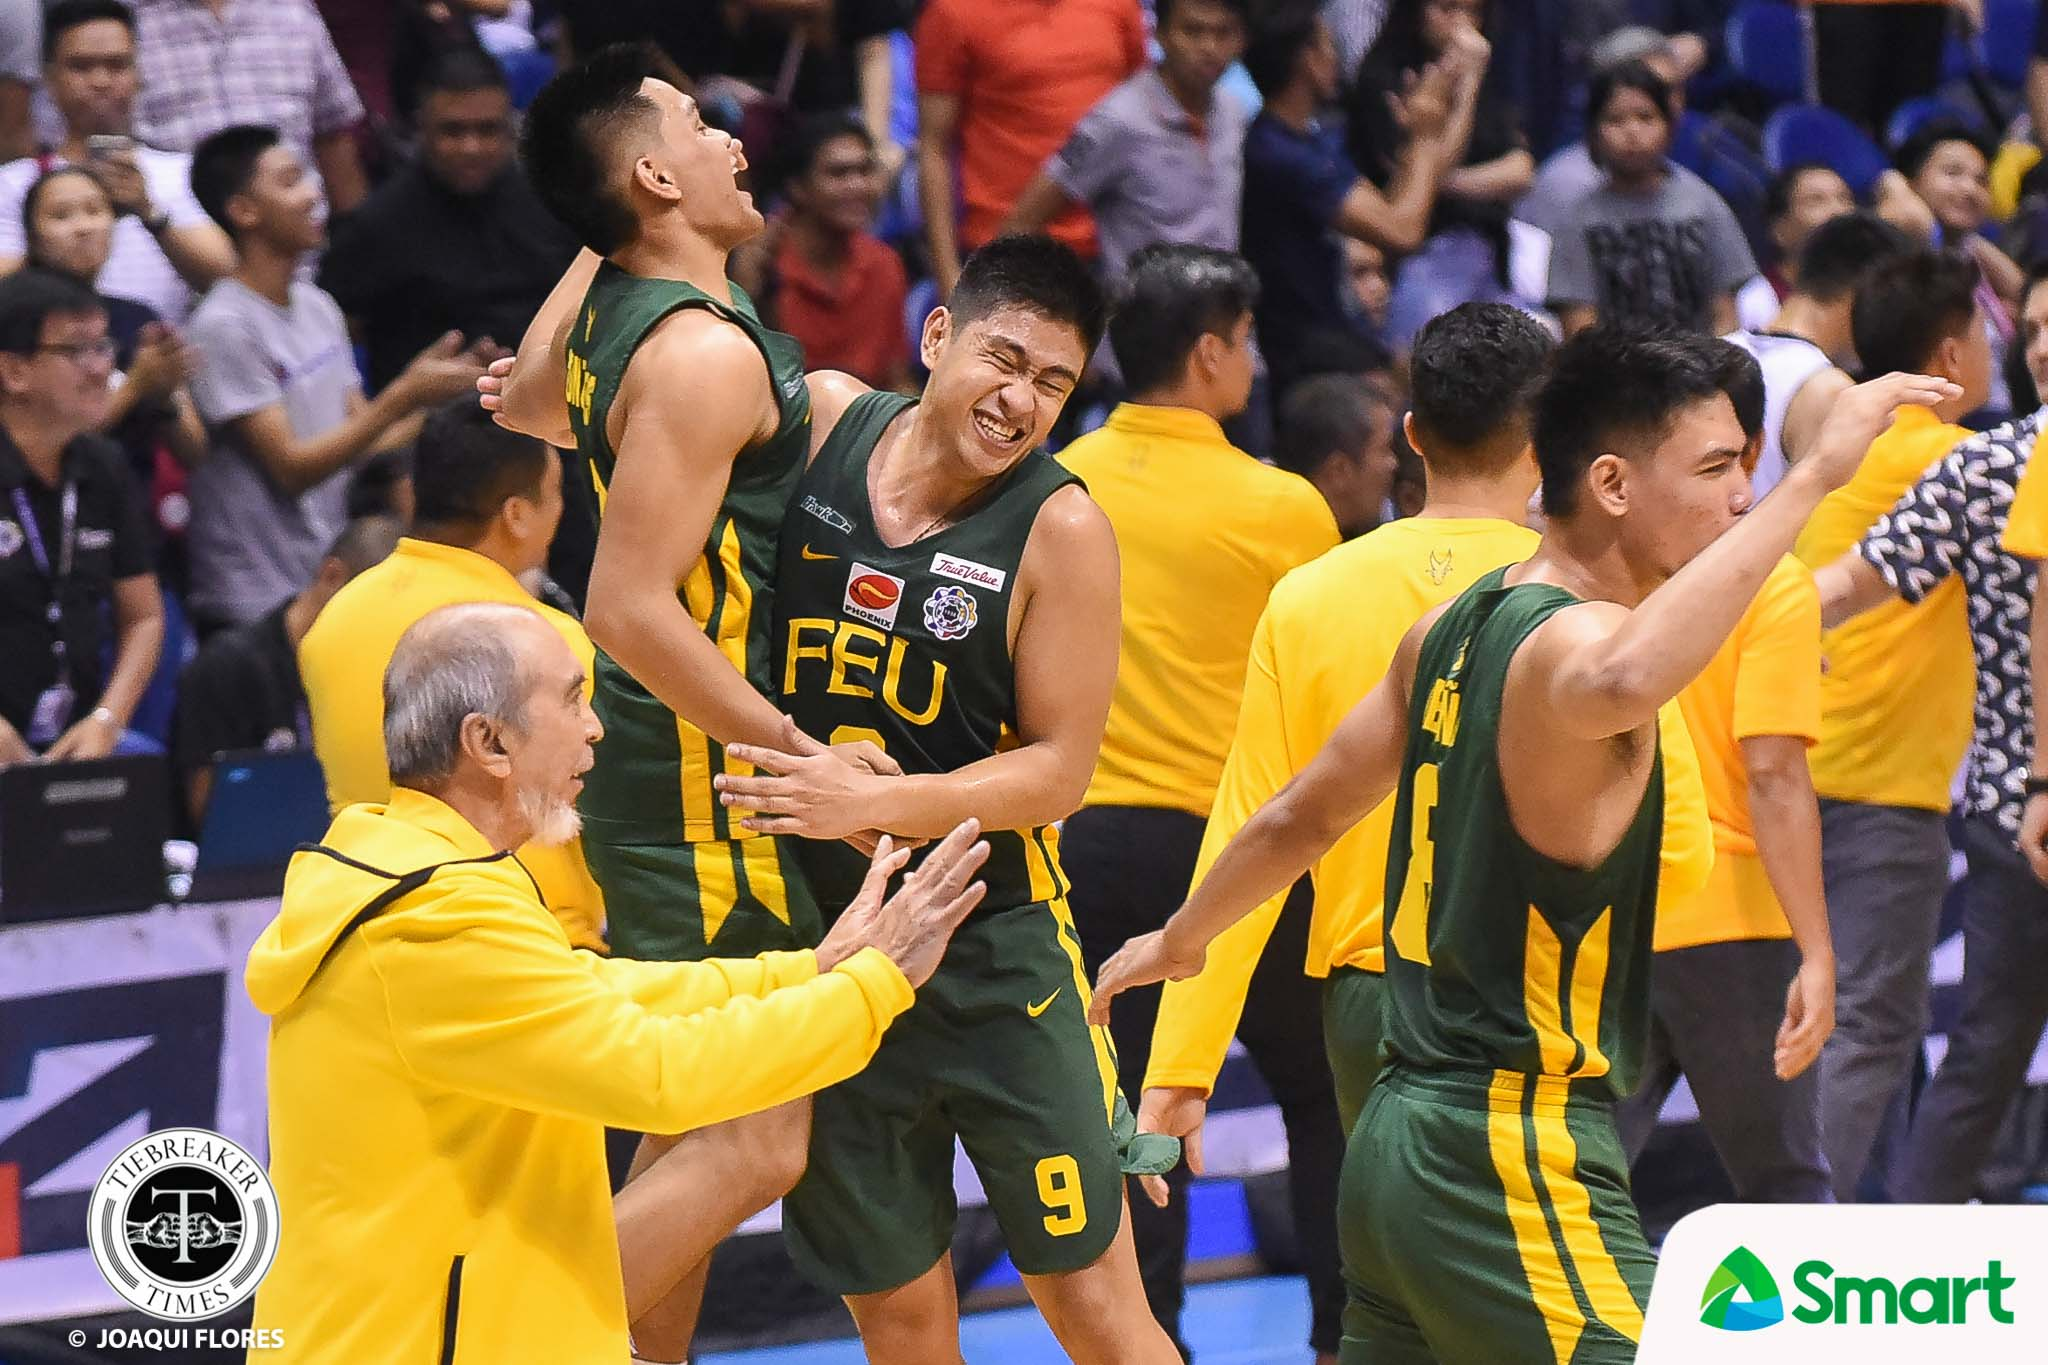 Tiebreaker Times FEU hands Adamson first loss AdU Basketball FEU News UAAP  UAAP Season 81 Men's Basketball UAAP Season 81 Simon Camacho Sean Manganti Prince Orizu Papi Sarr Olsen Racela Jerrick Ahanmisi Hubert Cani Franz Pumaren FEU Men's Basketball Arvin Tolentino Adamson Men's Basketball